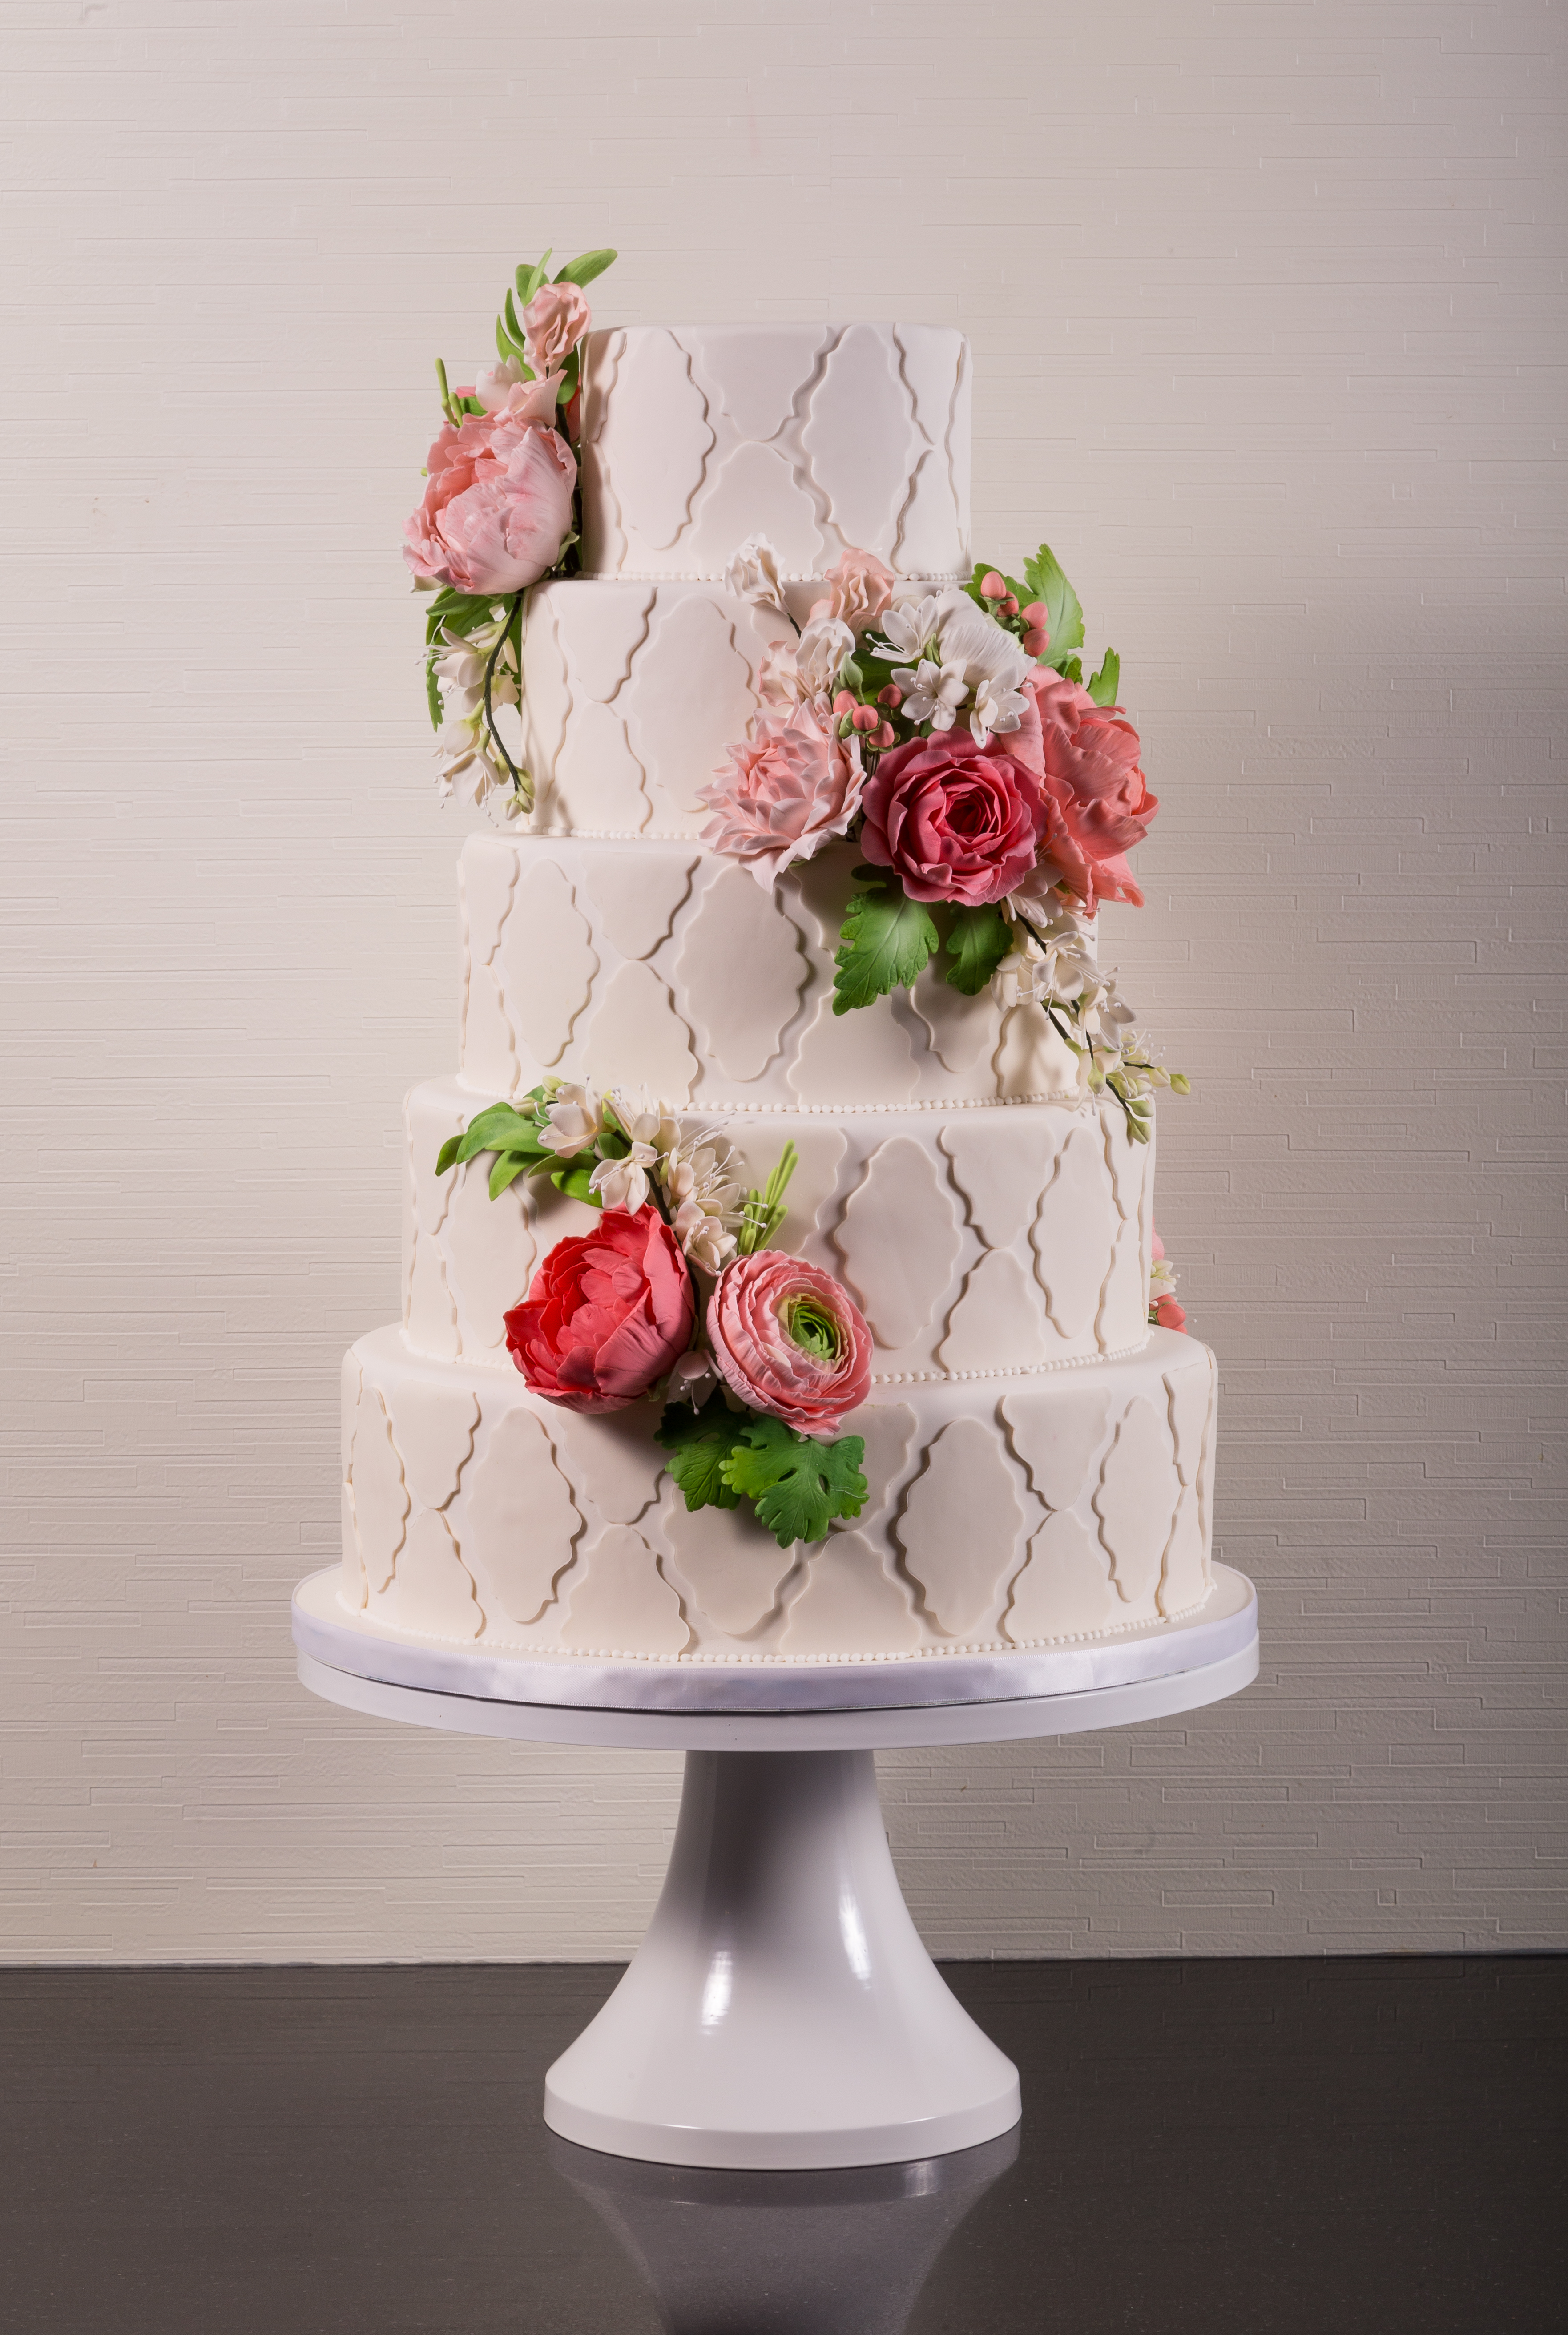 Baby Pink wedding cake with pink sugar roses